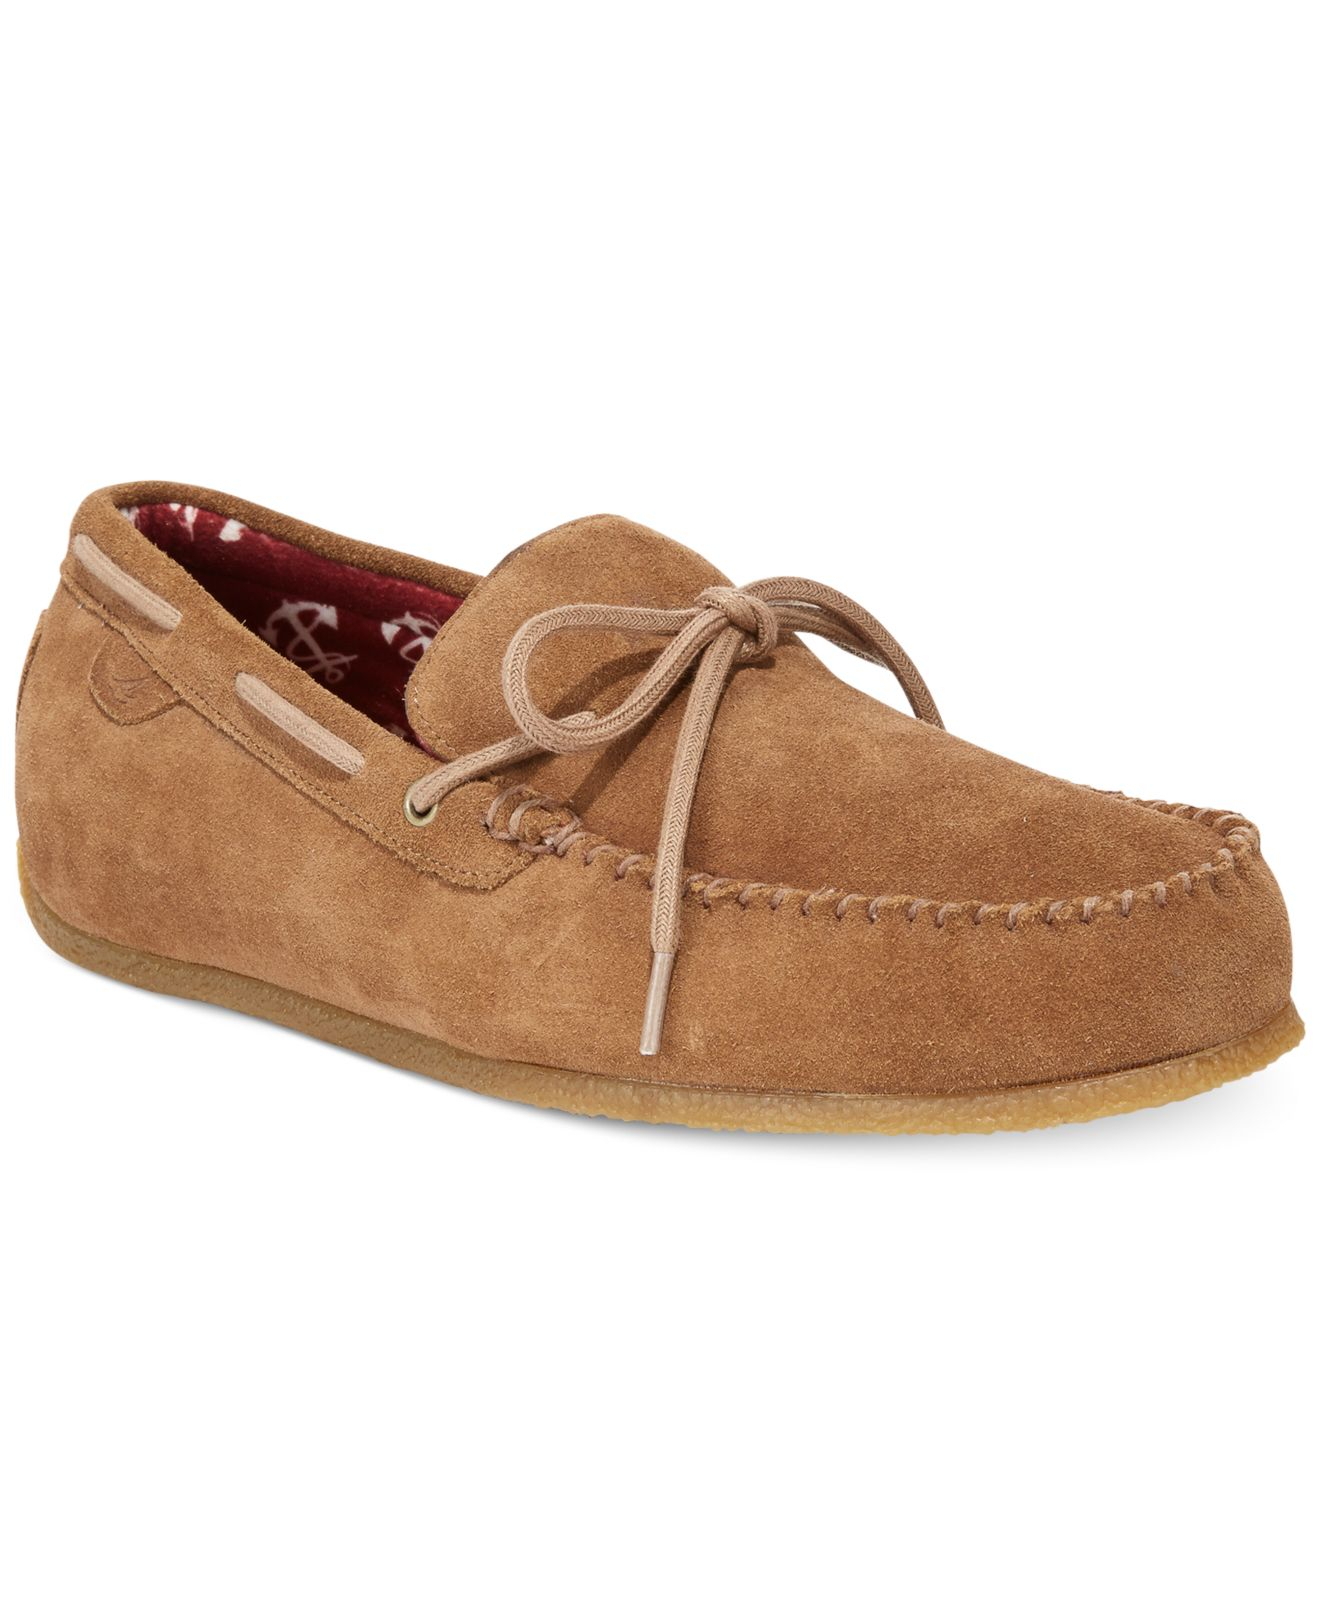 Sperry Top-Sider, commonly referred to as boat shoes, offers dress and casual shoes for men, women and kids. Sperry Top-Sider created the first boat shoe for sailors in Sperry Top-Sider created the first boat shoe for sailors in